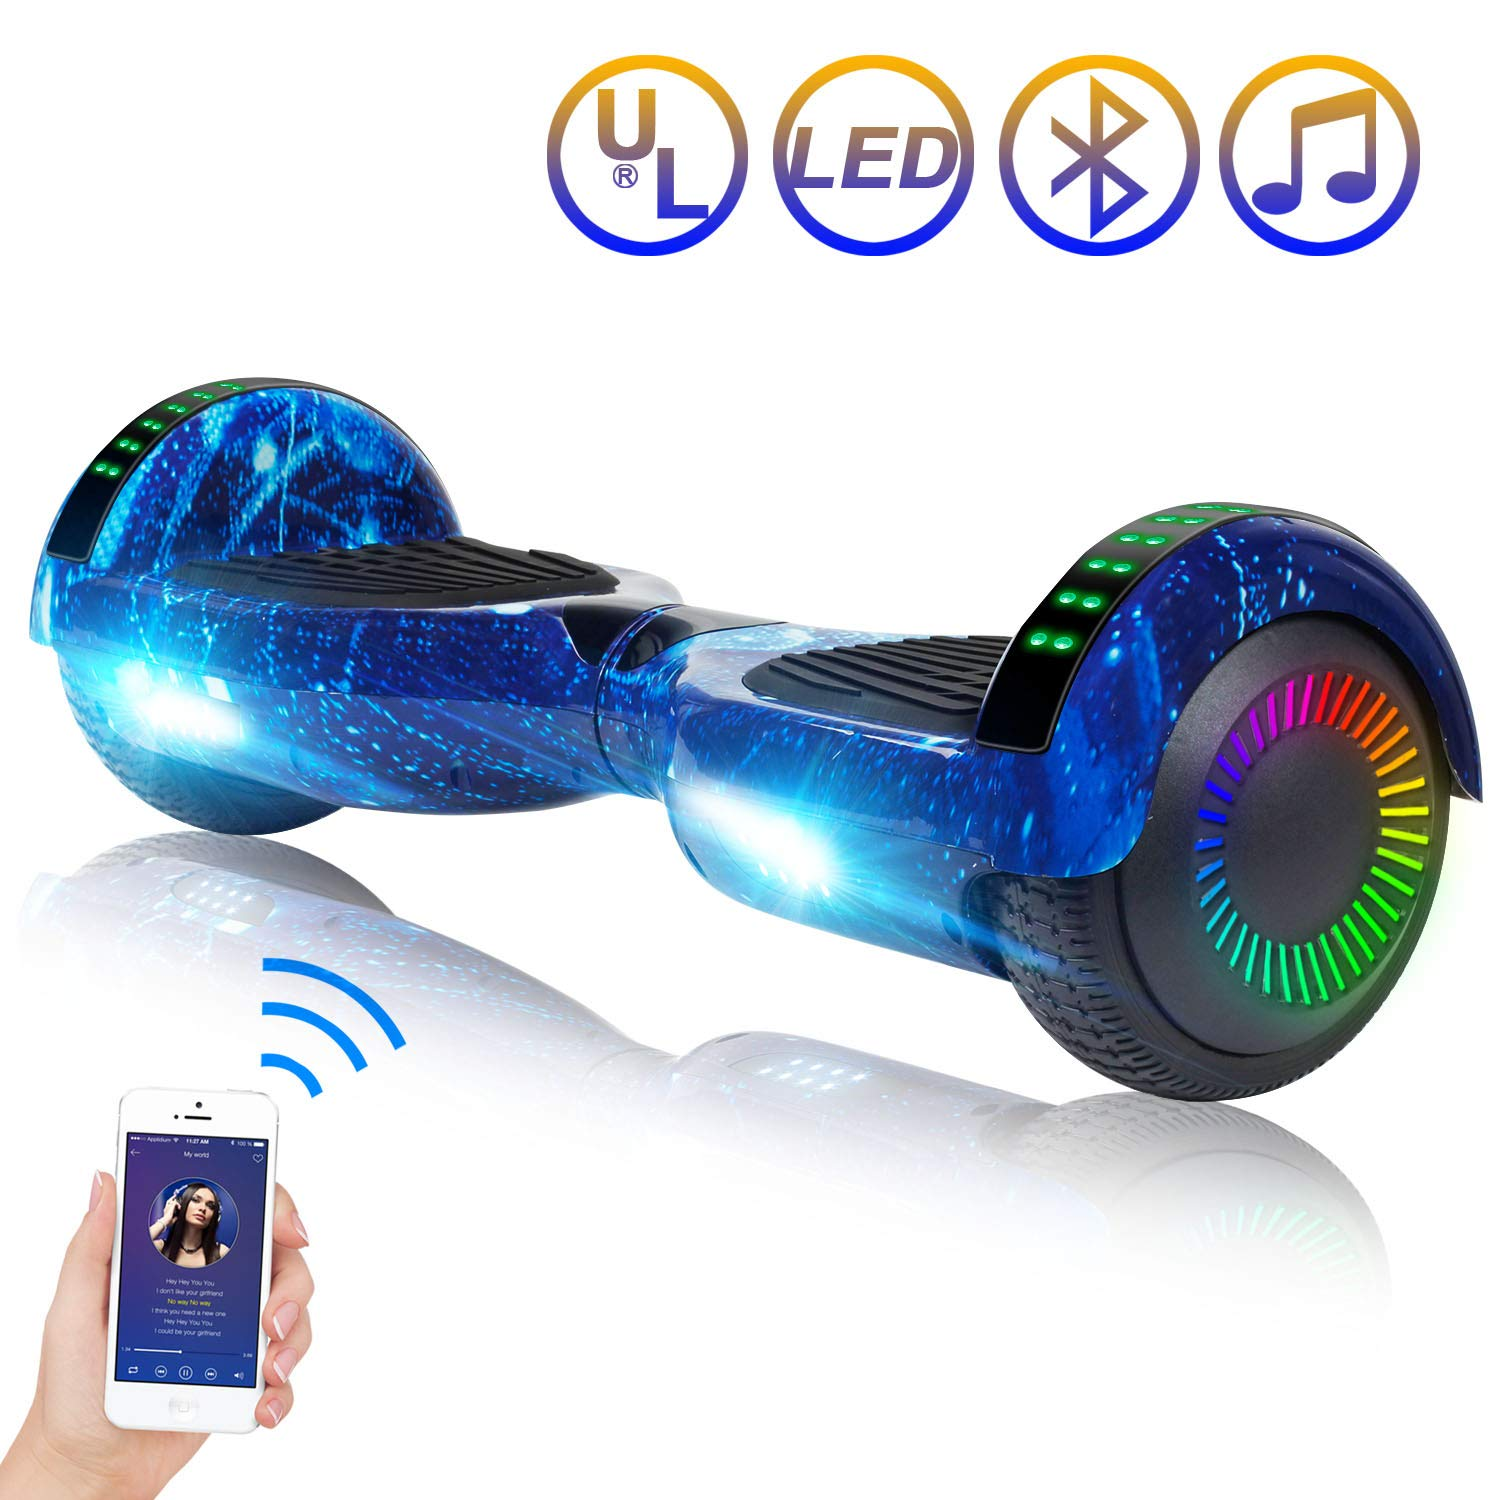 SISIGAD Hoverboard 6.5'' Two-Wheel Self Balancing Scooter with Bluetooth Speaker Electric Scooter for Adult Kids Gift UL 2272 Certified - Starry Sky